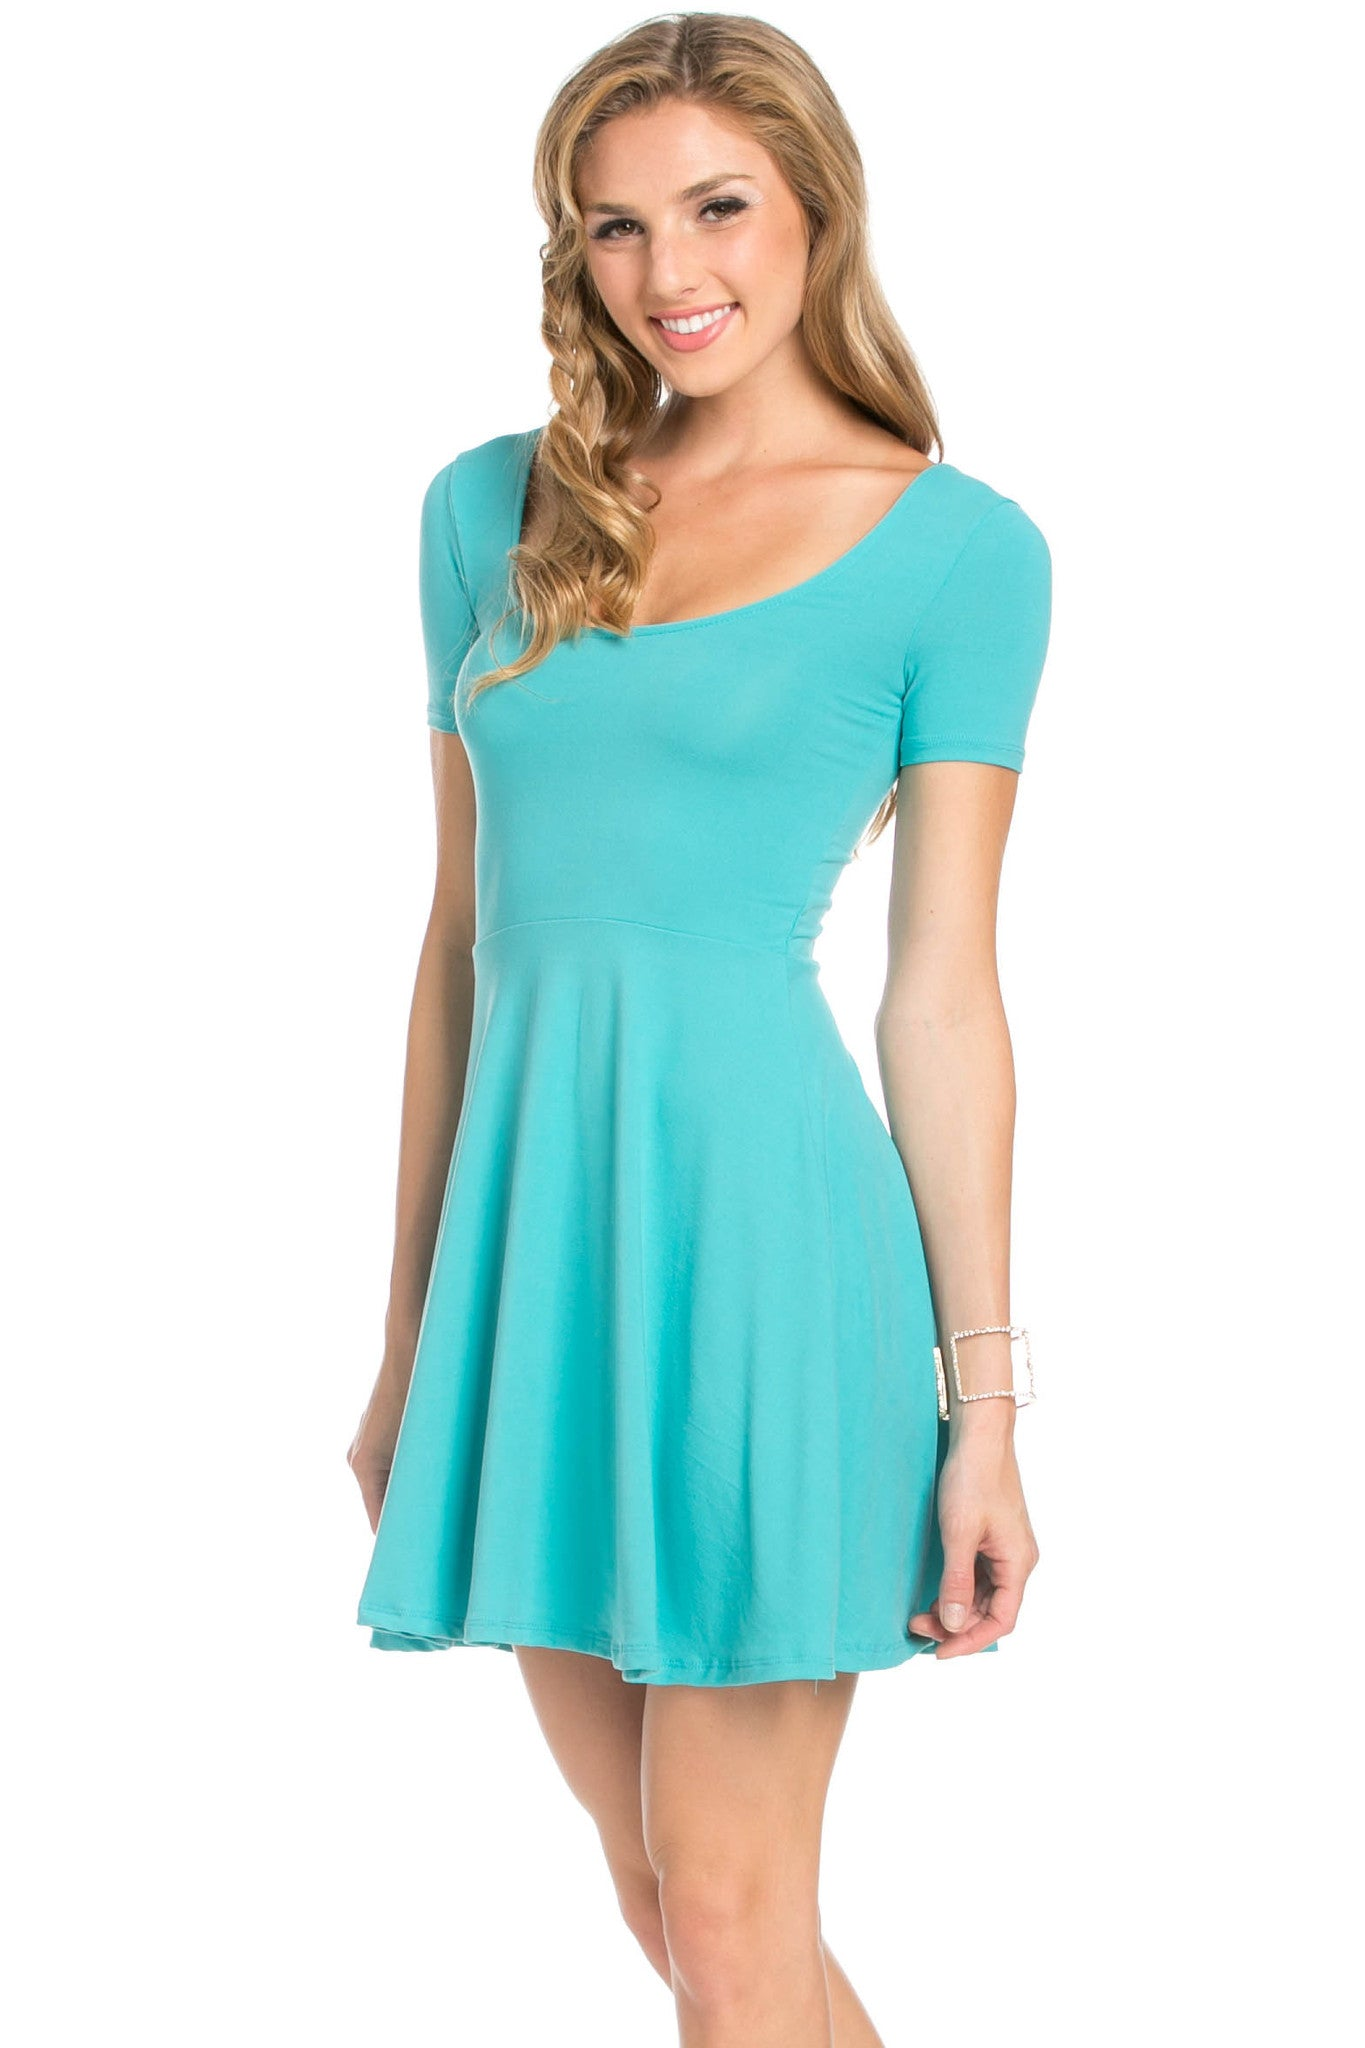 Micro Suede Jade Mini Dress - Dresses - My Yuccie - 1